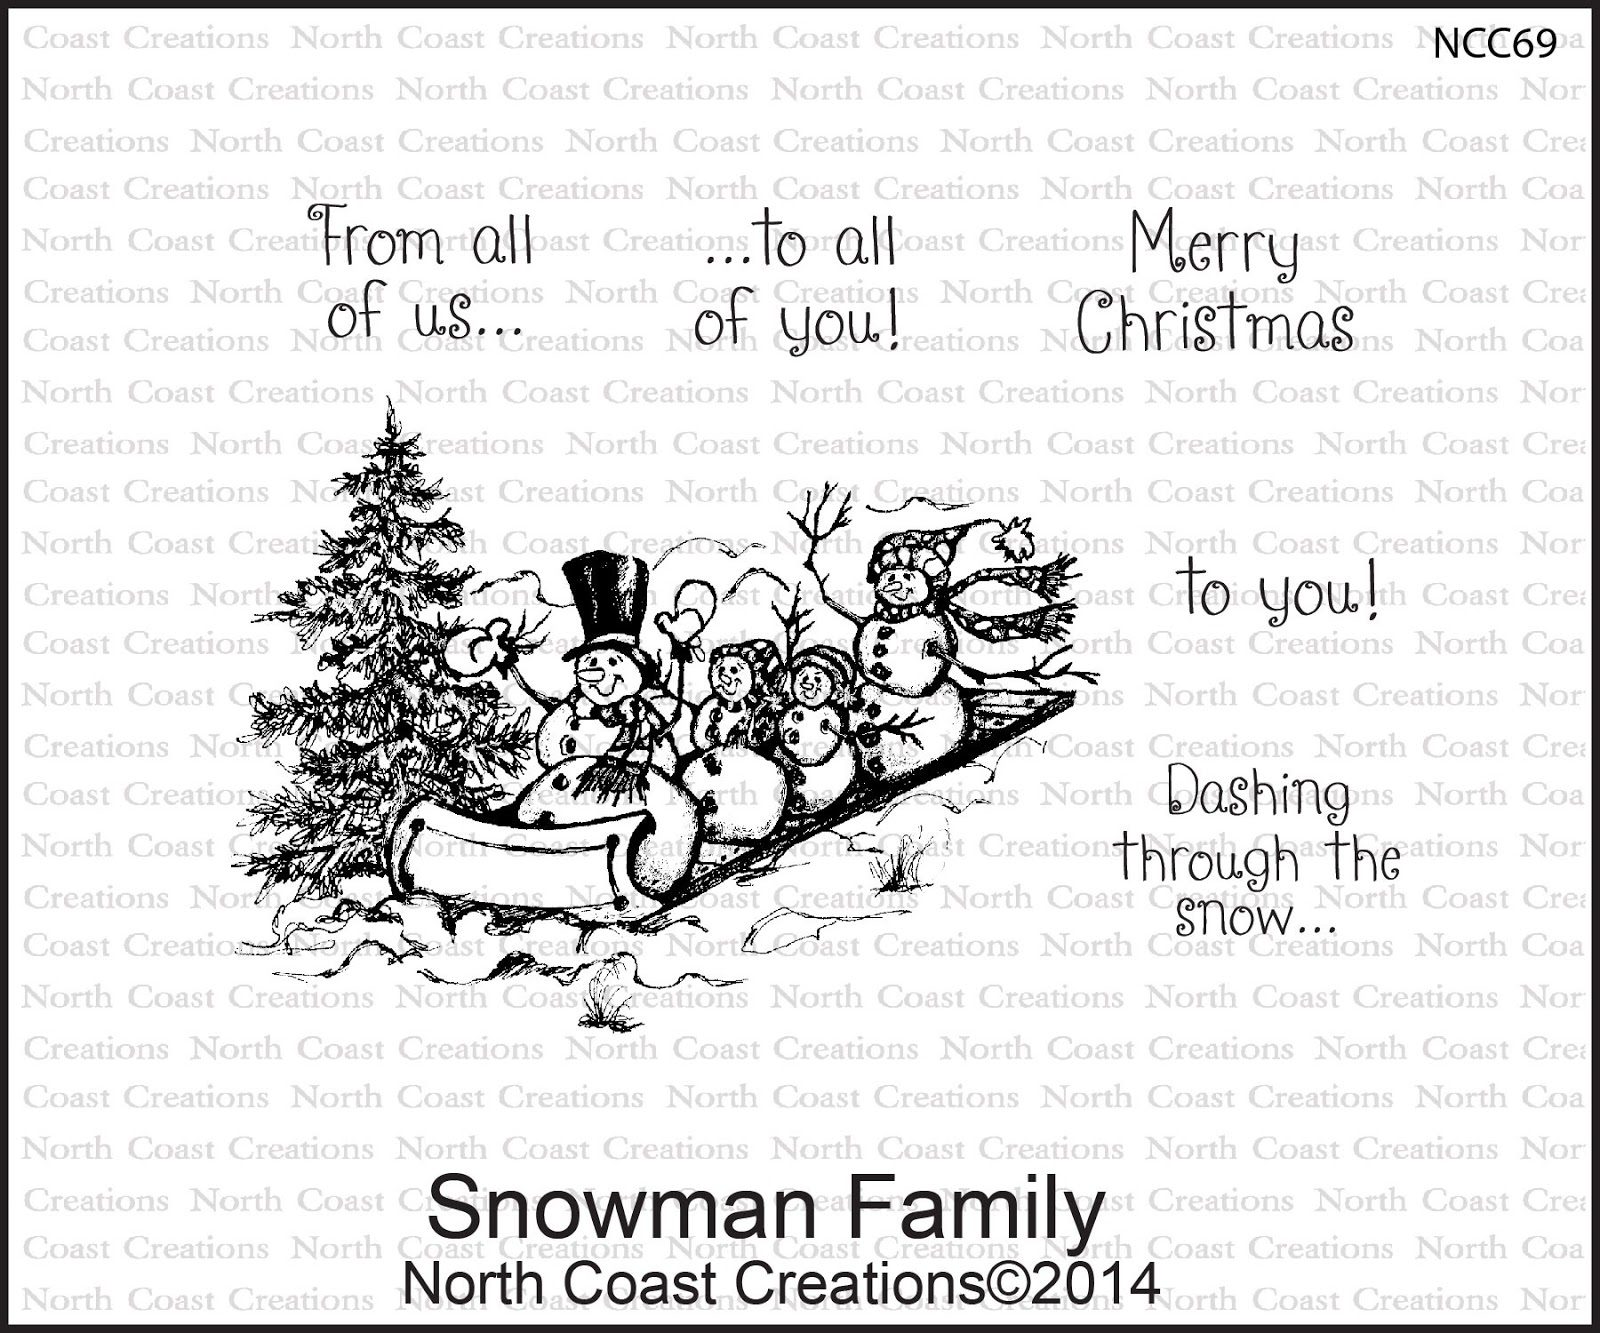 https://www.northcoastcreations.com/index.php/new-releases/2014-october/ncc69-snowman-family.html